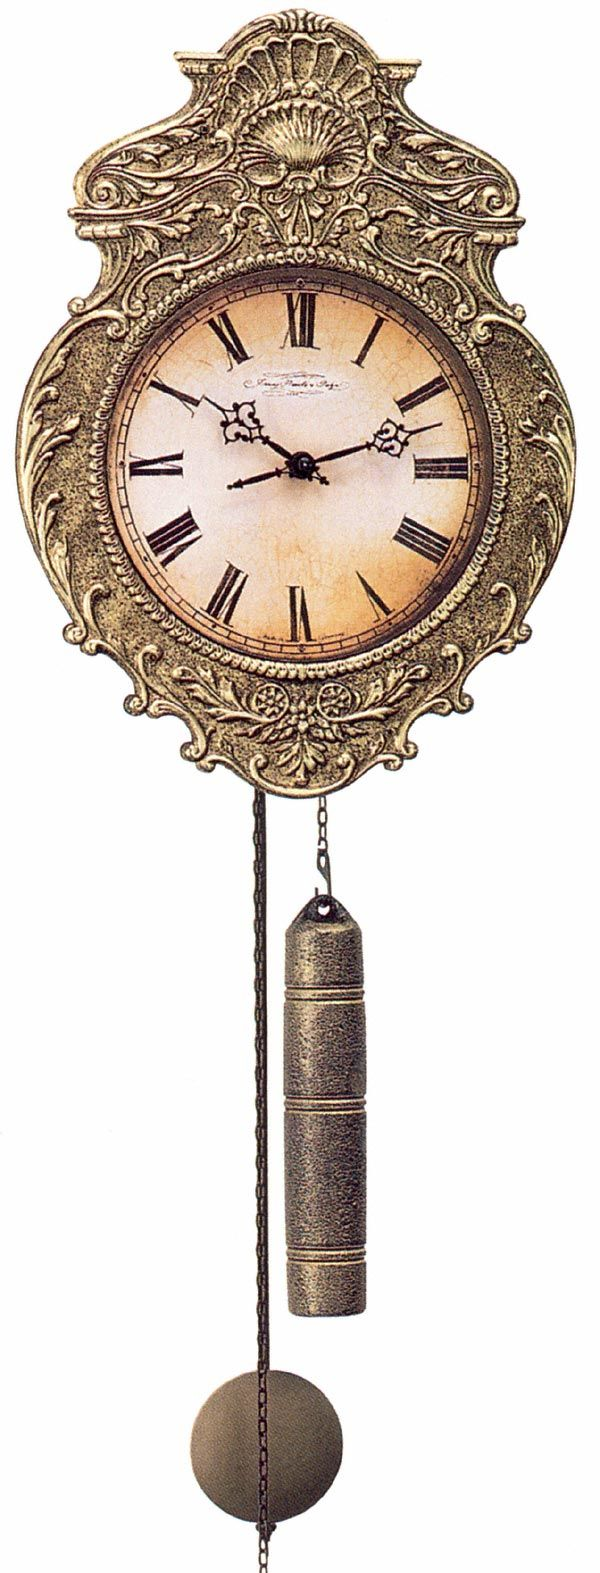 Best 25 unusual clocks ideas on pinterest vintage fans Unusual clocks for sale